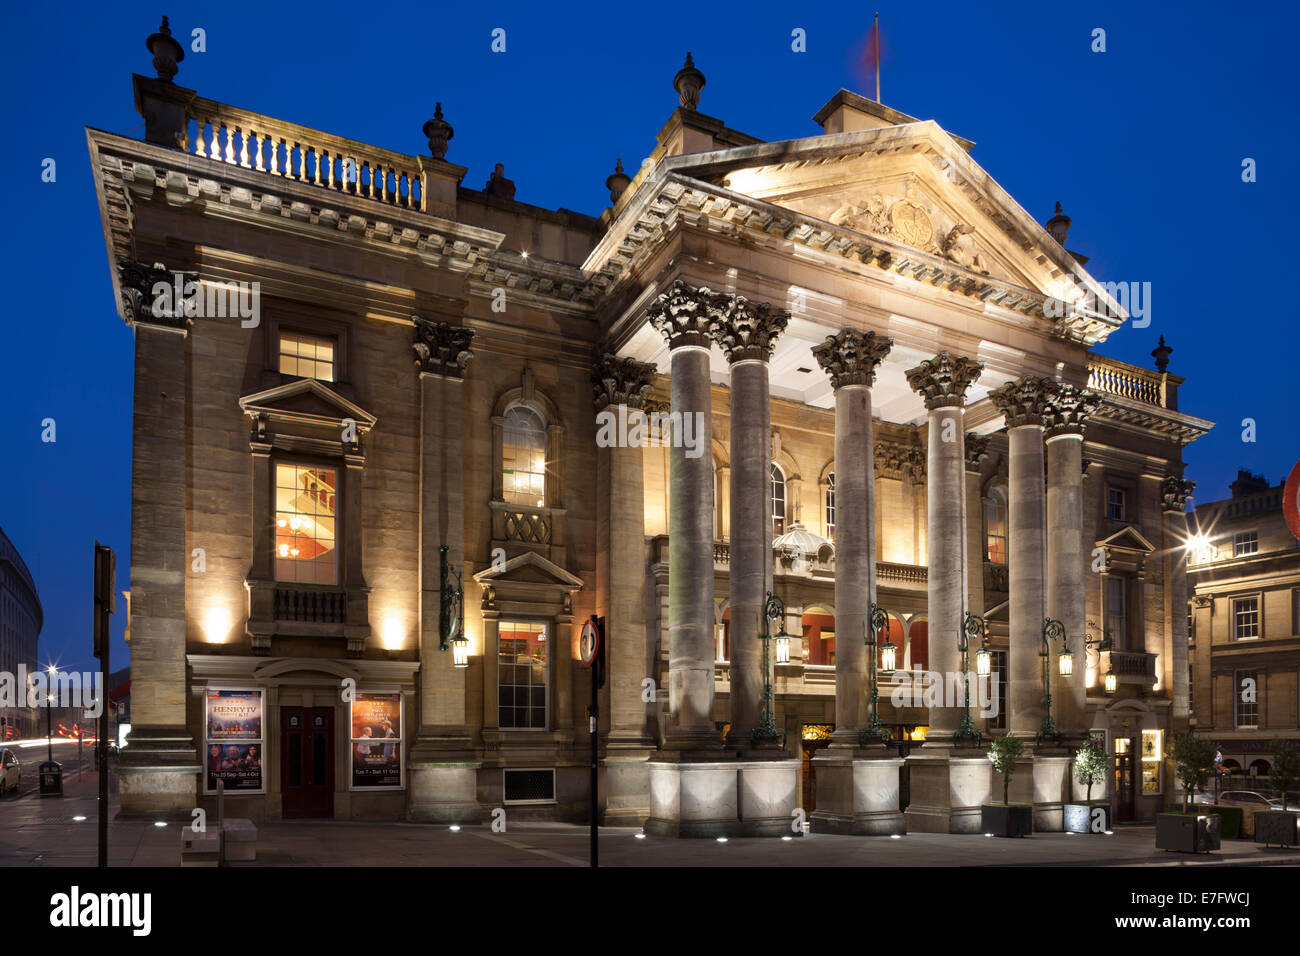 The Theatre Royal, Newcastle, at night. - Stock Image